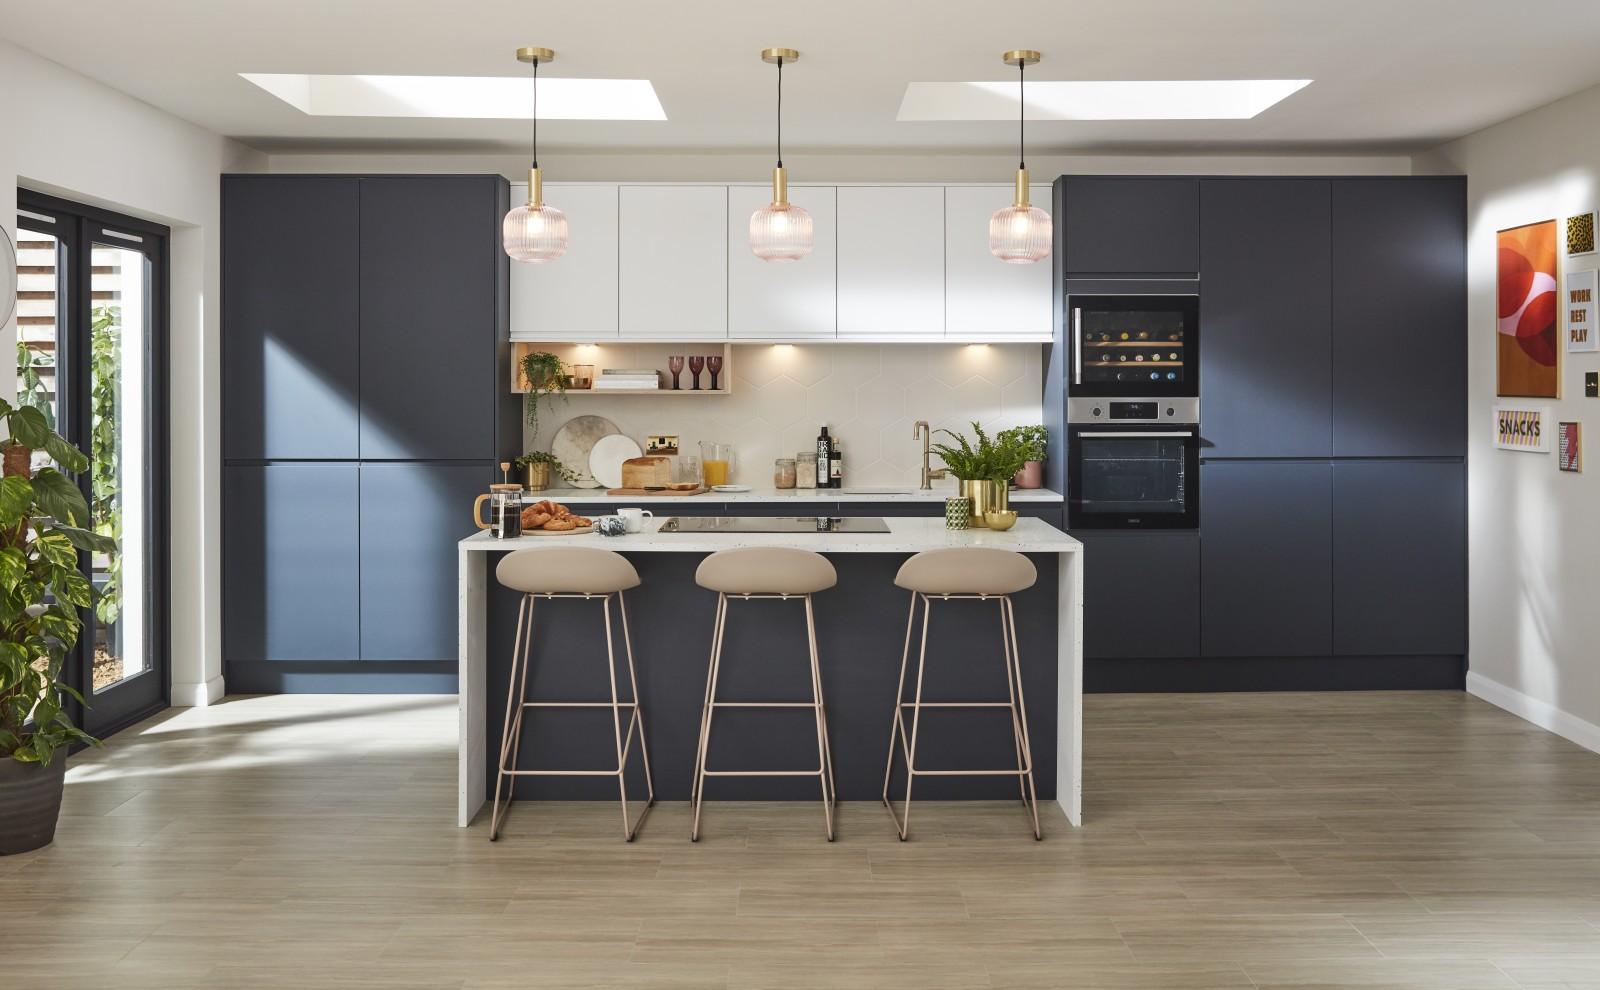 Luna Kitchen from Magnet. An affordable handless look with integrated J Pull doors for a stylish and modern look.